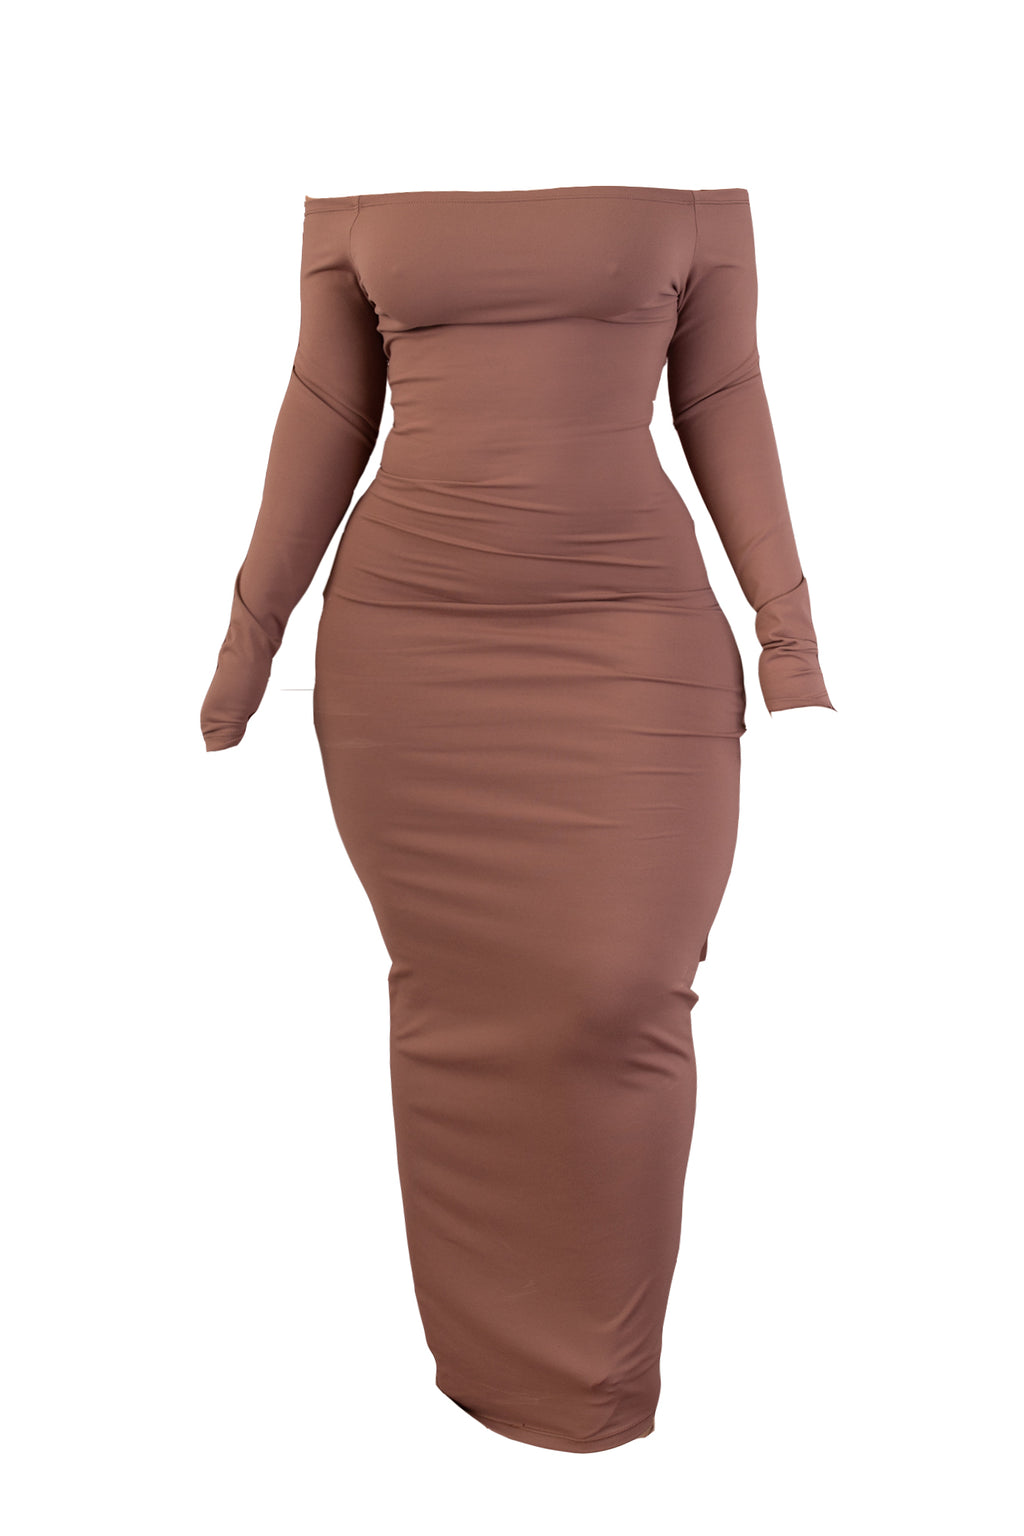 The MOCHA Wifey Shaping Maxi 3